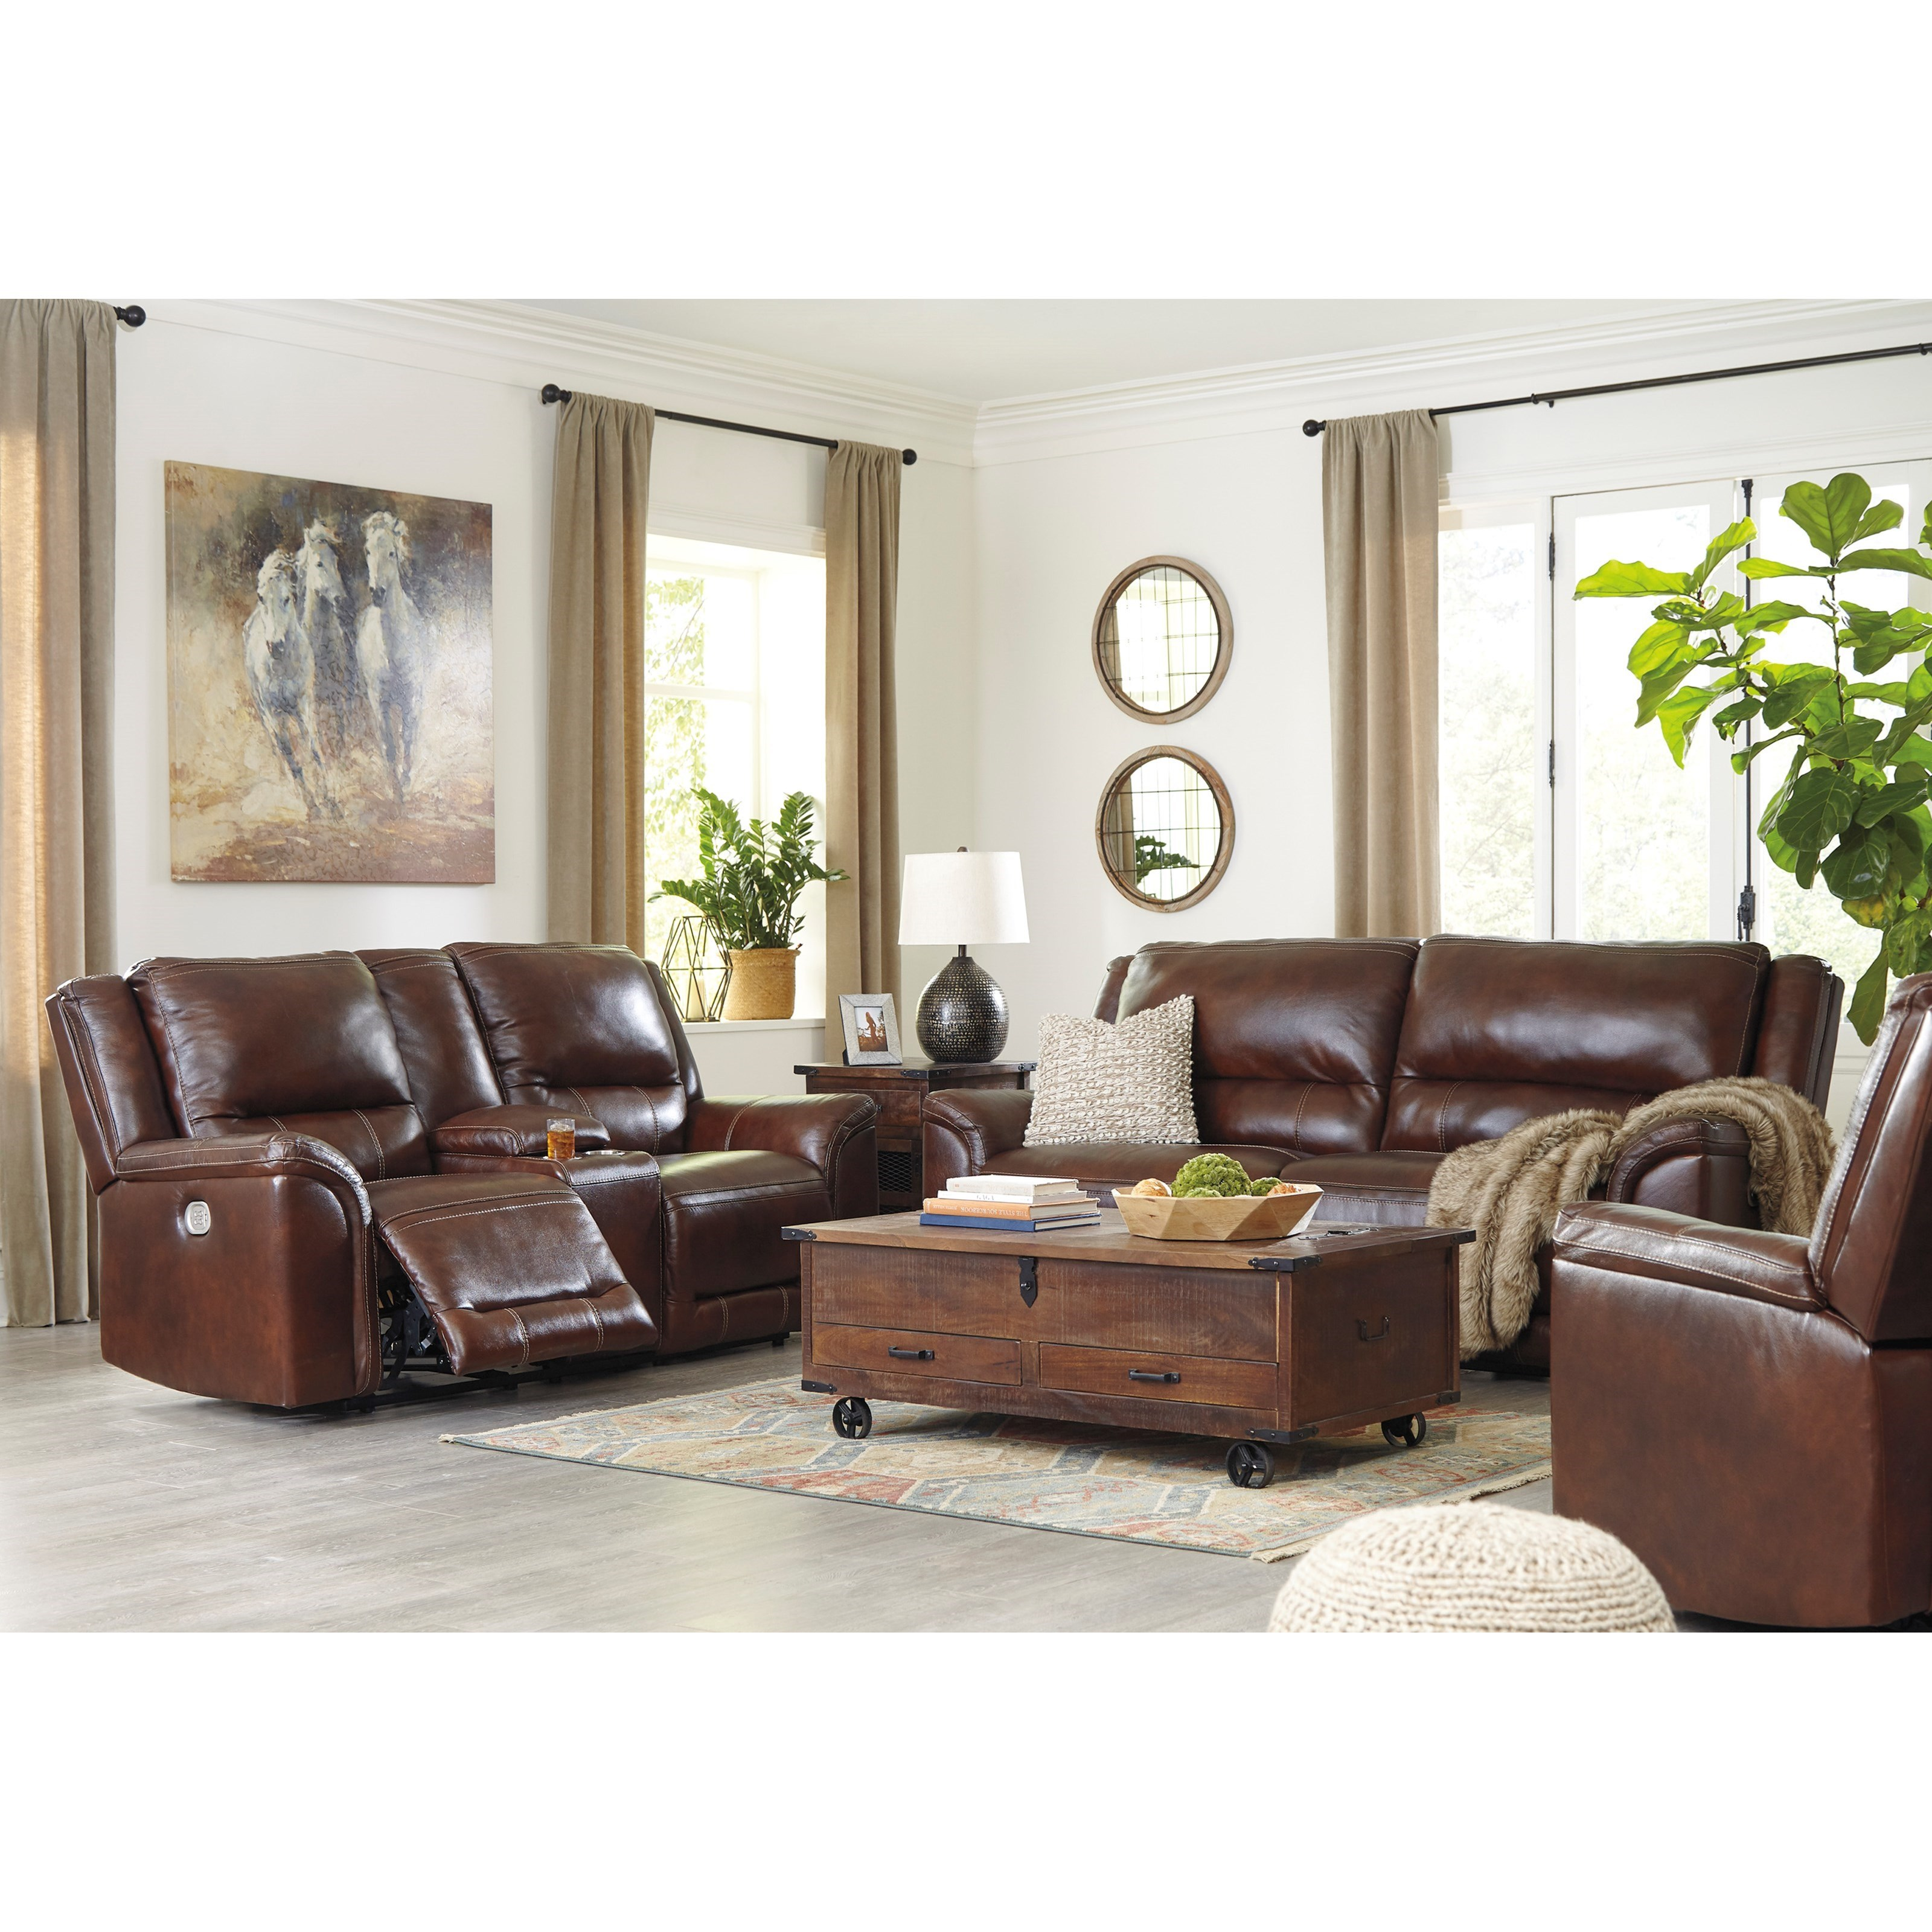 Catanzaro Reclining Living Room Group by Signature Design by Ashley at Northeast Factory Direct